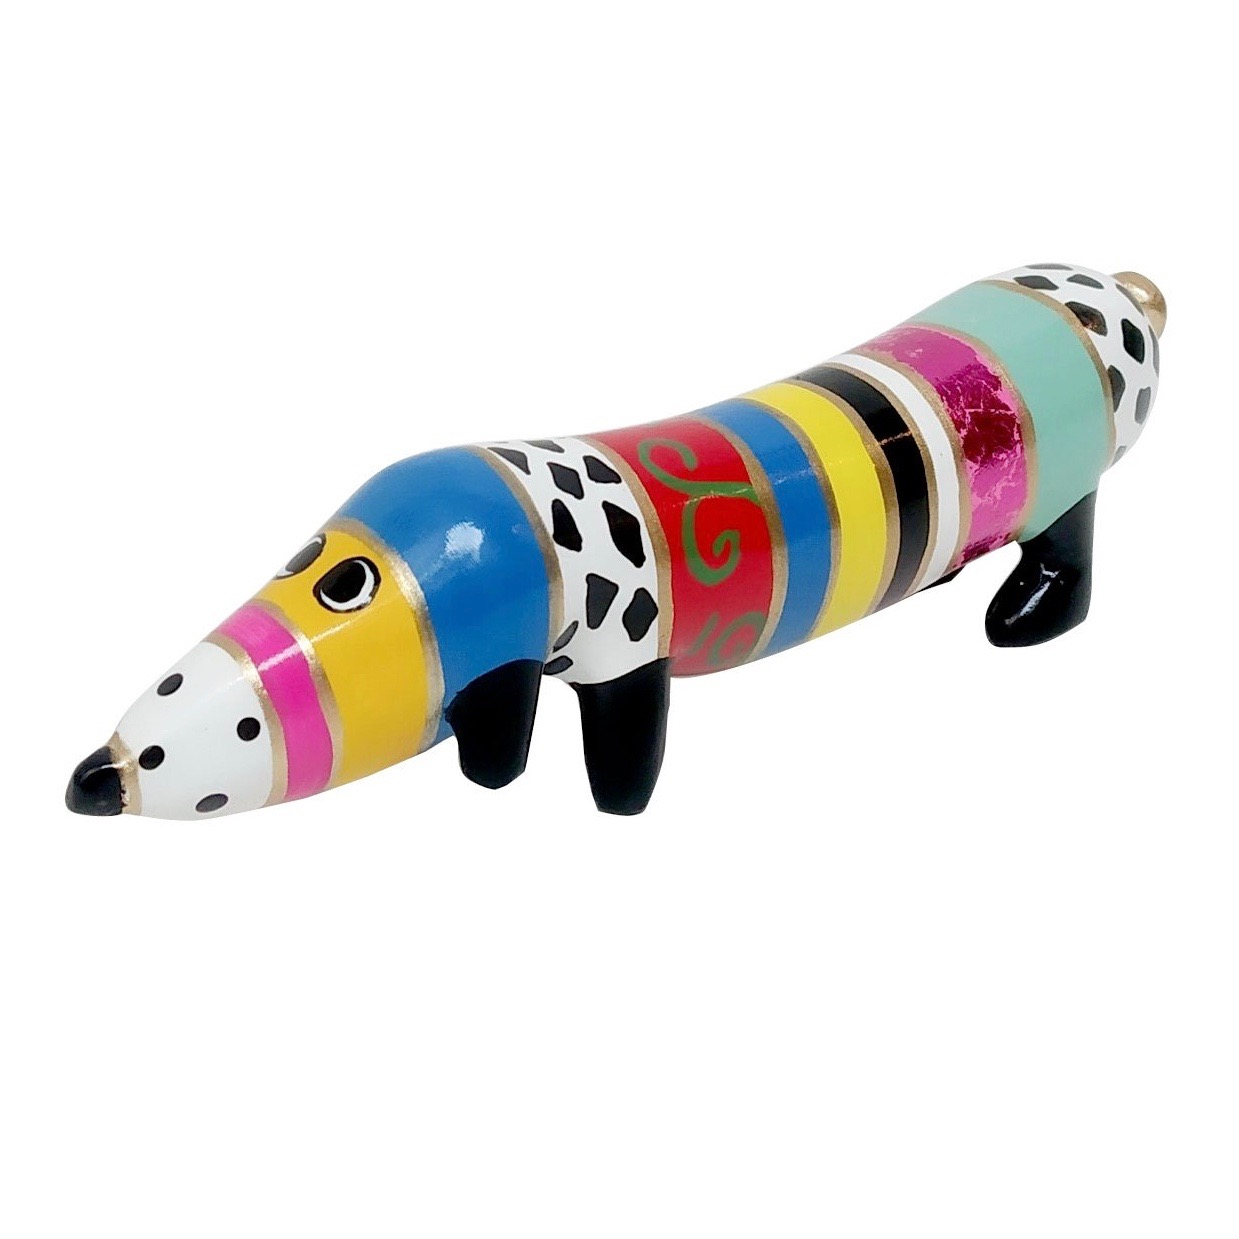 Niloc Pagen Hot Dog large 'Fantasy'